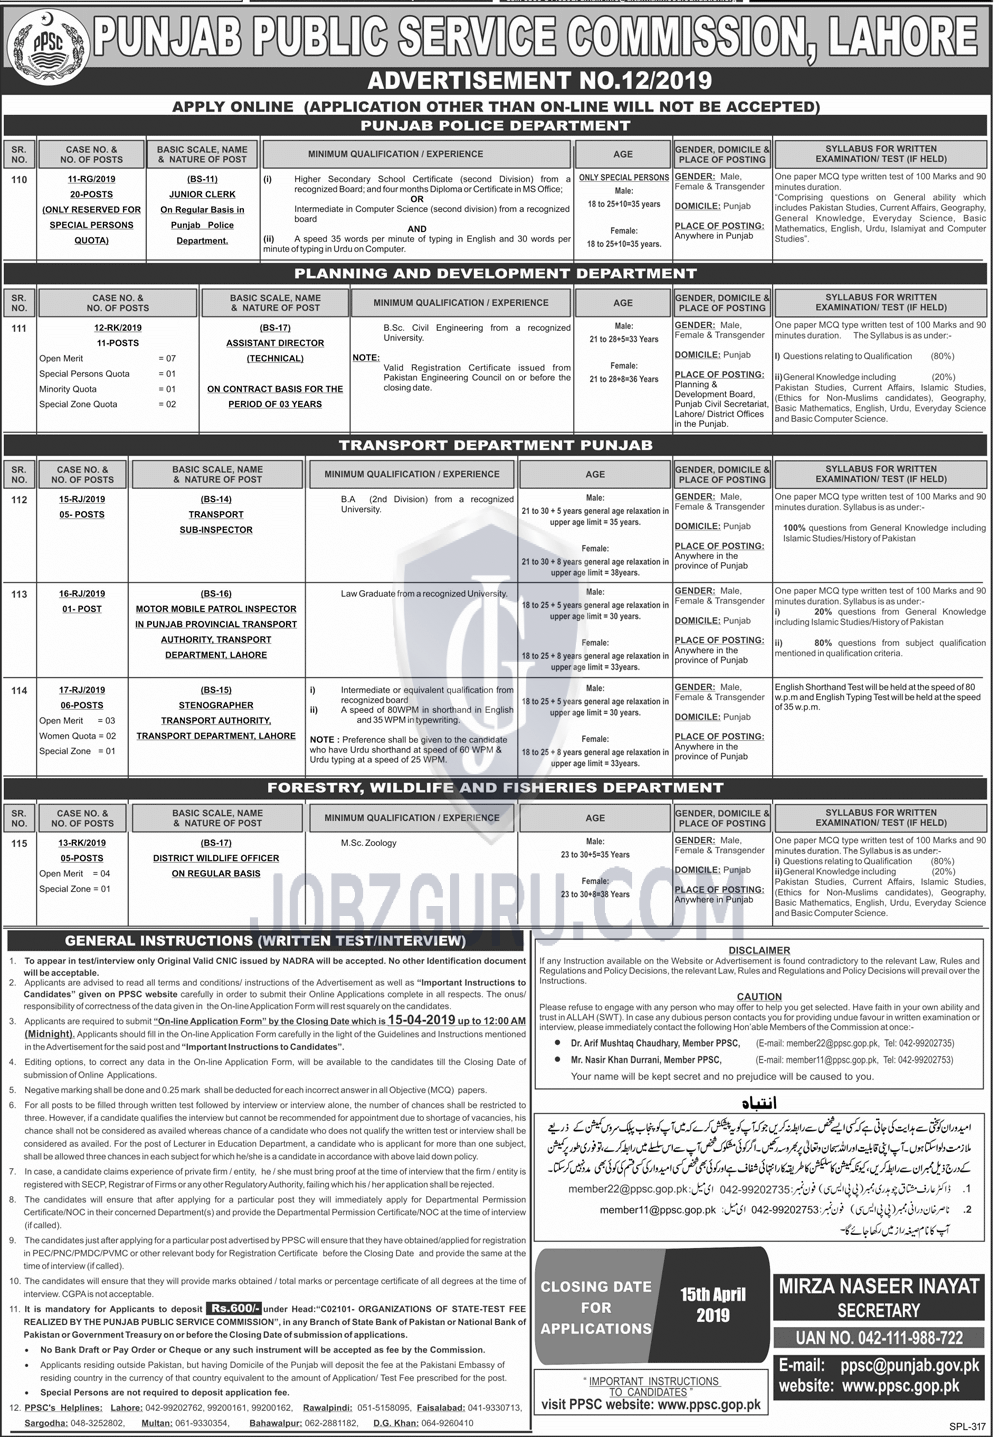 PPSC Jobs 2019 Punjab Police and Transport Department